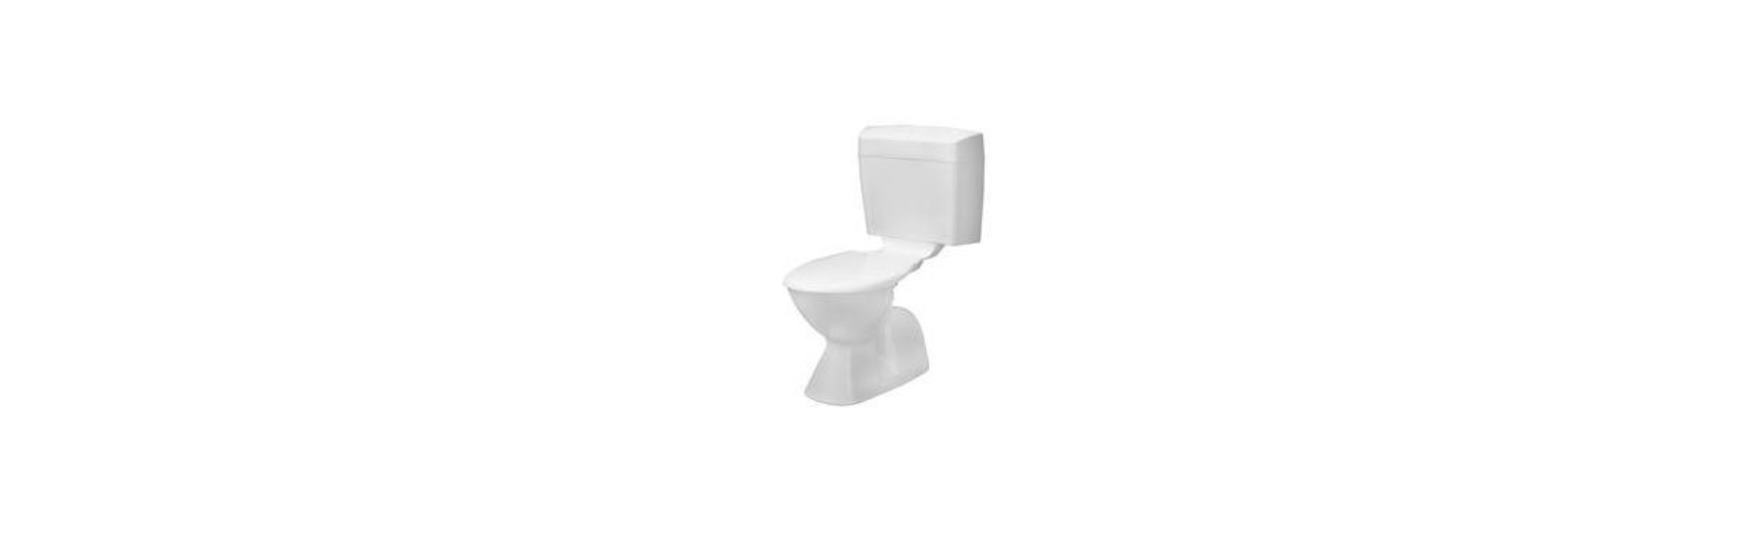 Toilet Repairs and Replacement